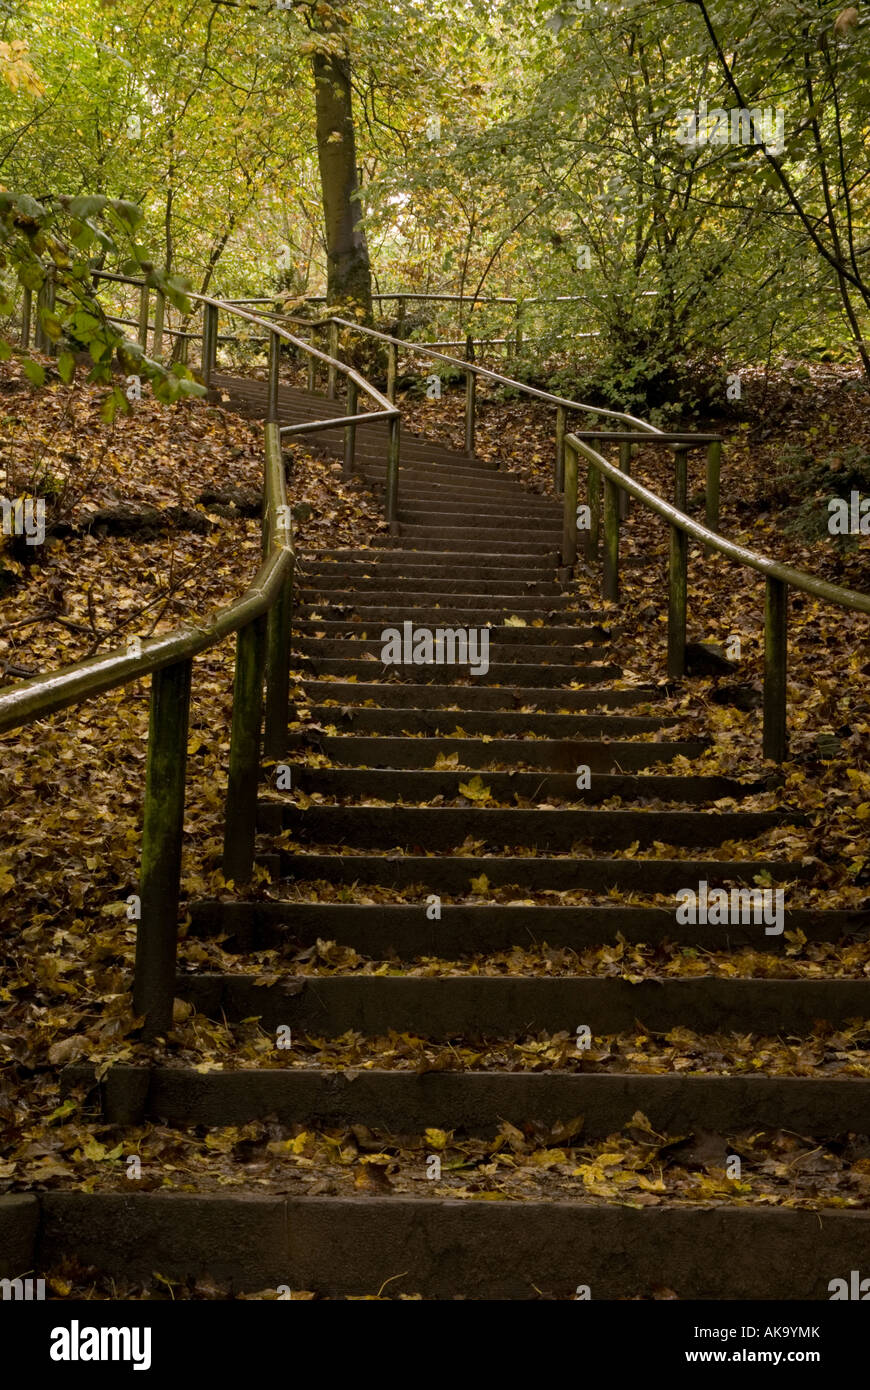 Autumn in Grin Low Woods Country Park - Stock Image